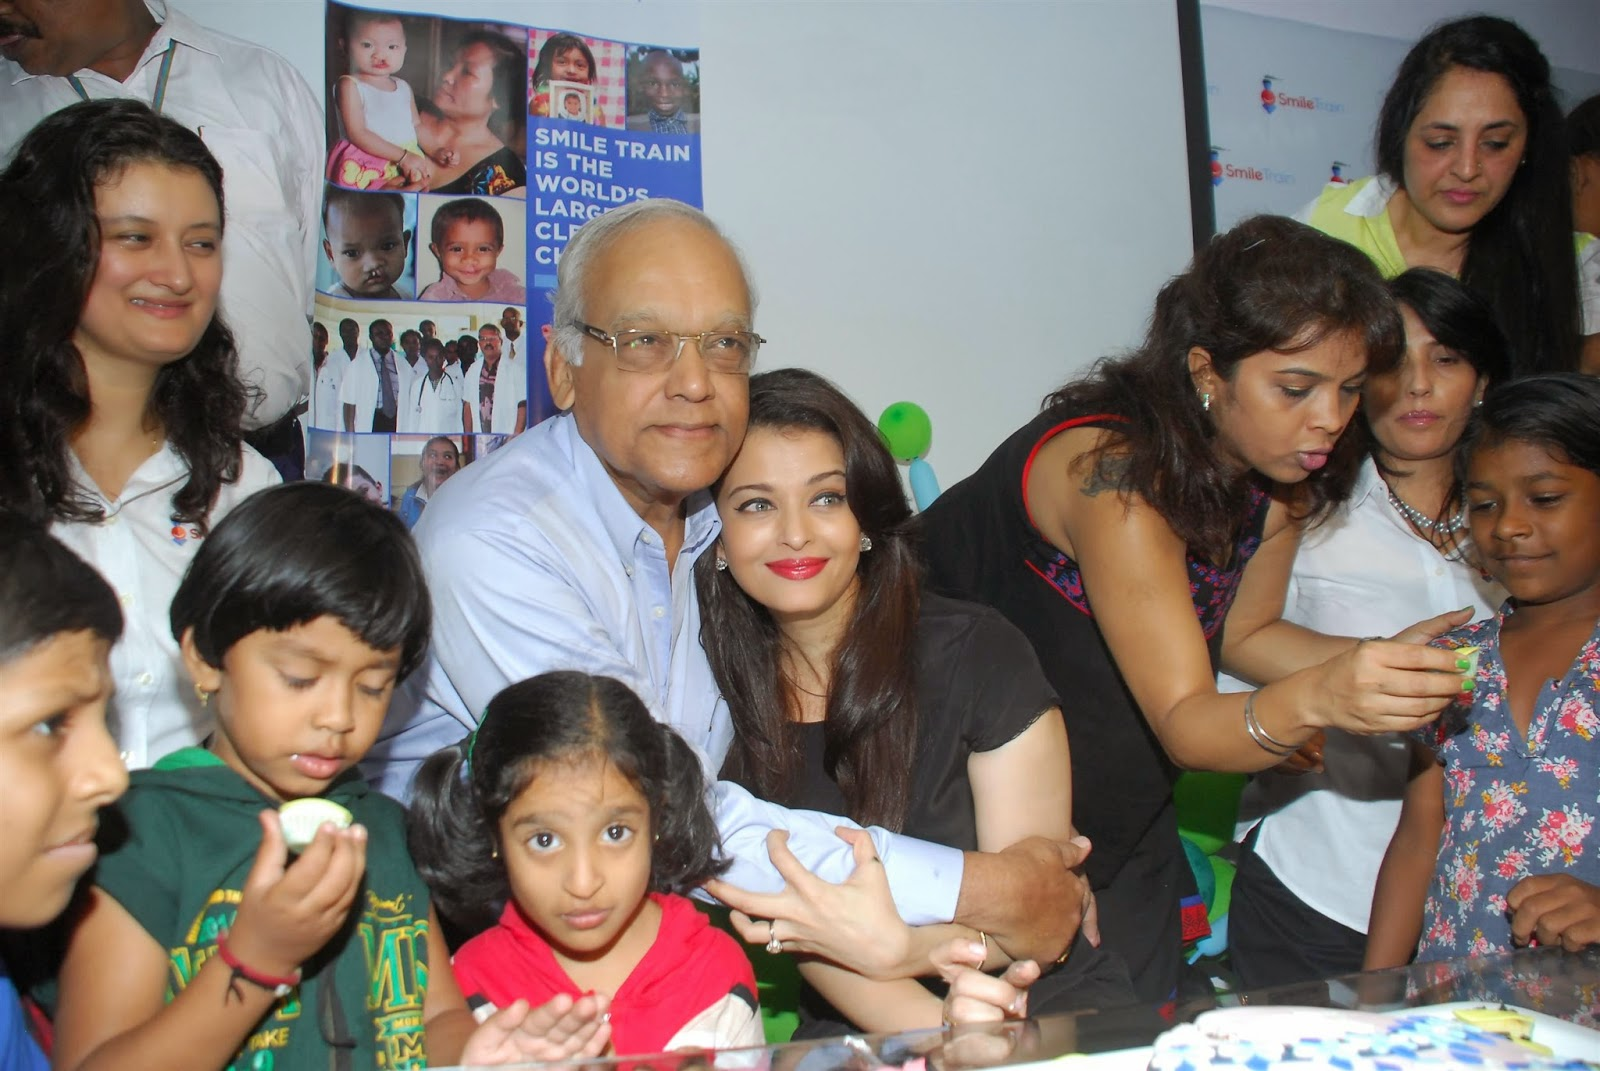 Aishwarya Rai Bachchan gifts 100 surgeries for cleft children